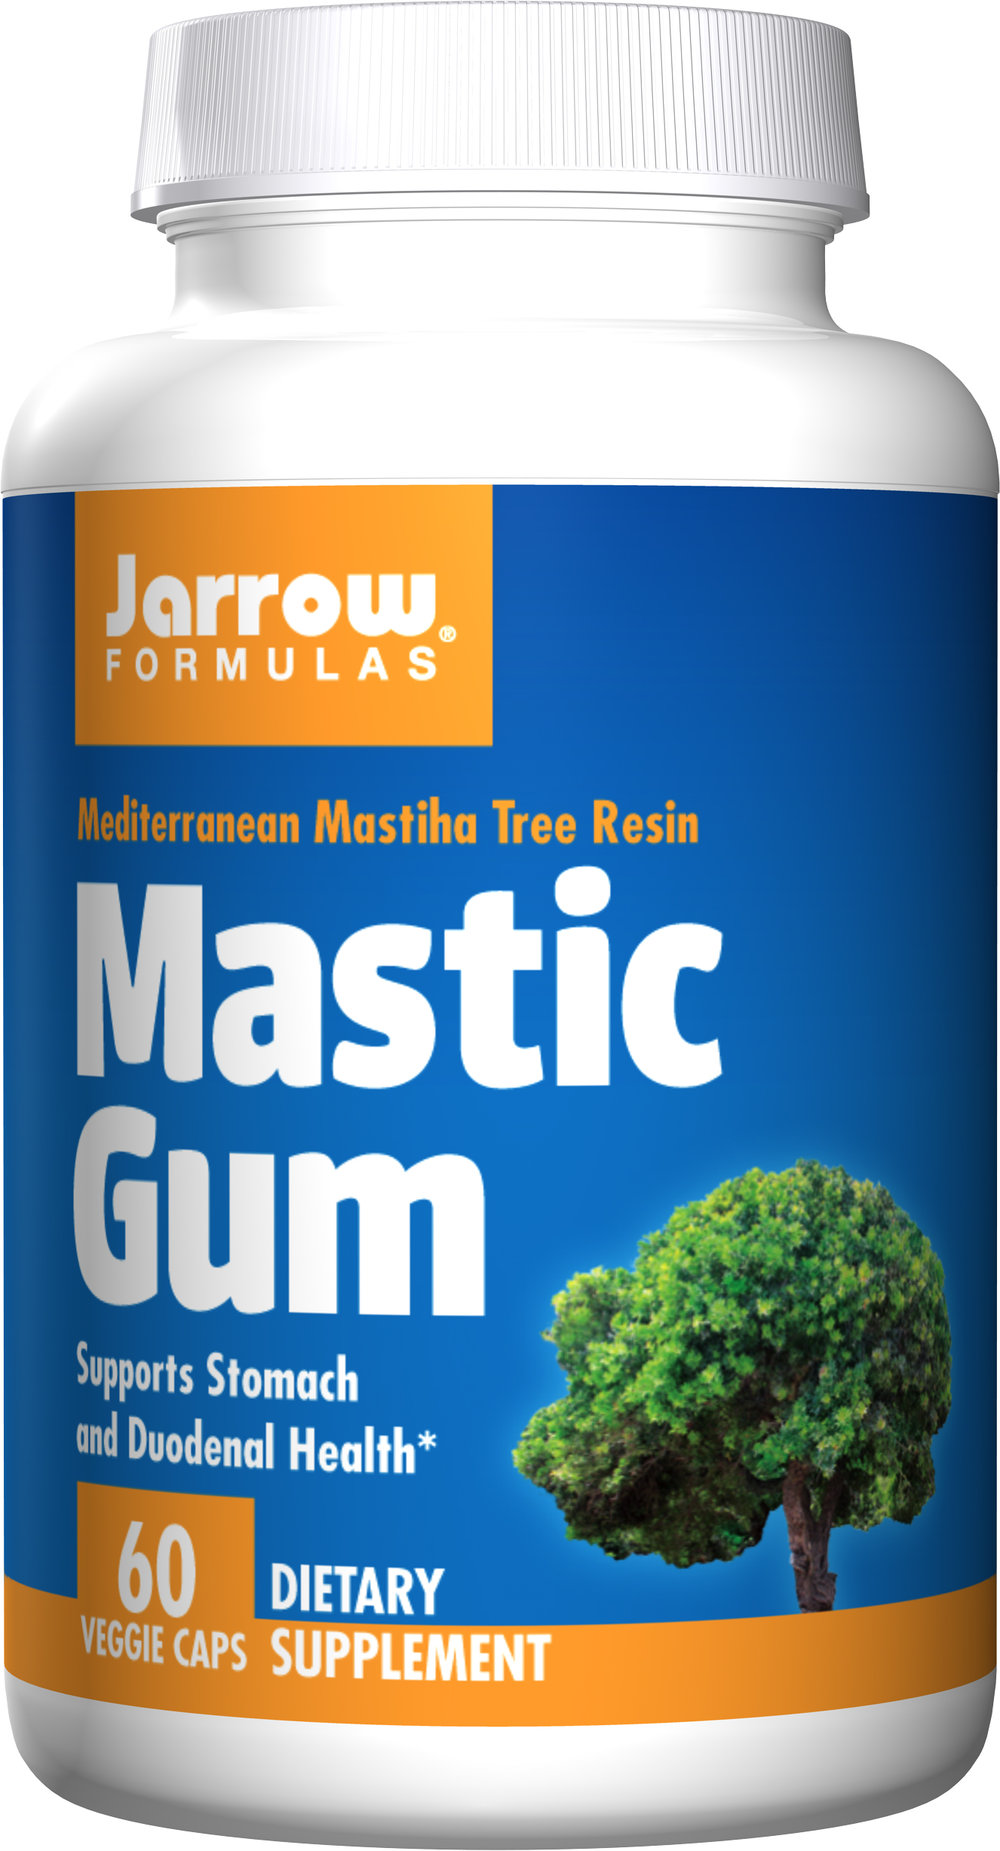 The US has become a large purchaser of mastiha.  Hospitals are buying it for bandages for wound healing, and US supplement companies have started selling it in pill form.  A serving here of Jarrow Mastic is 2 pills, 1000mg, for stomach health. -